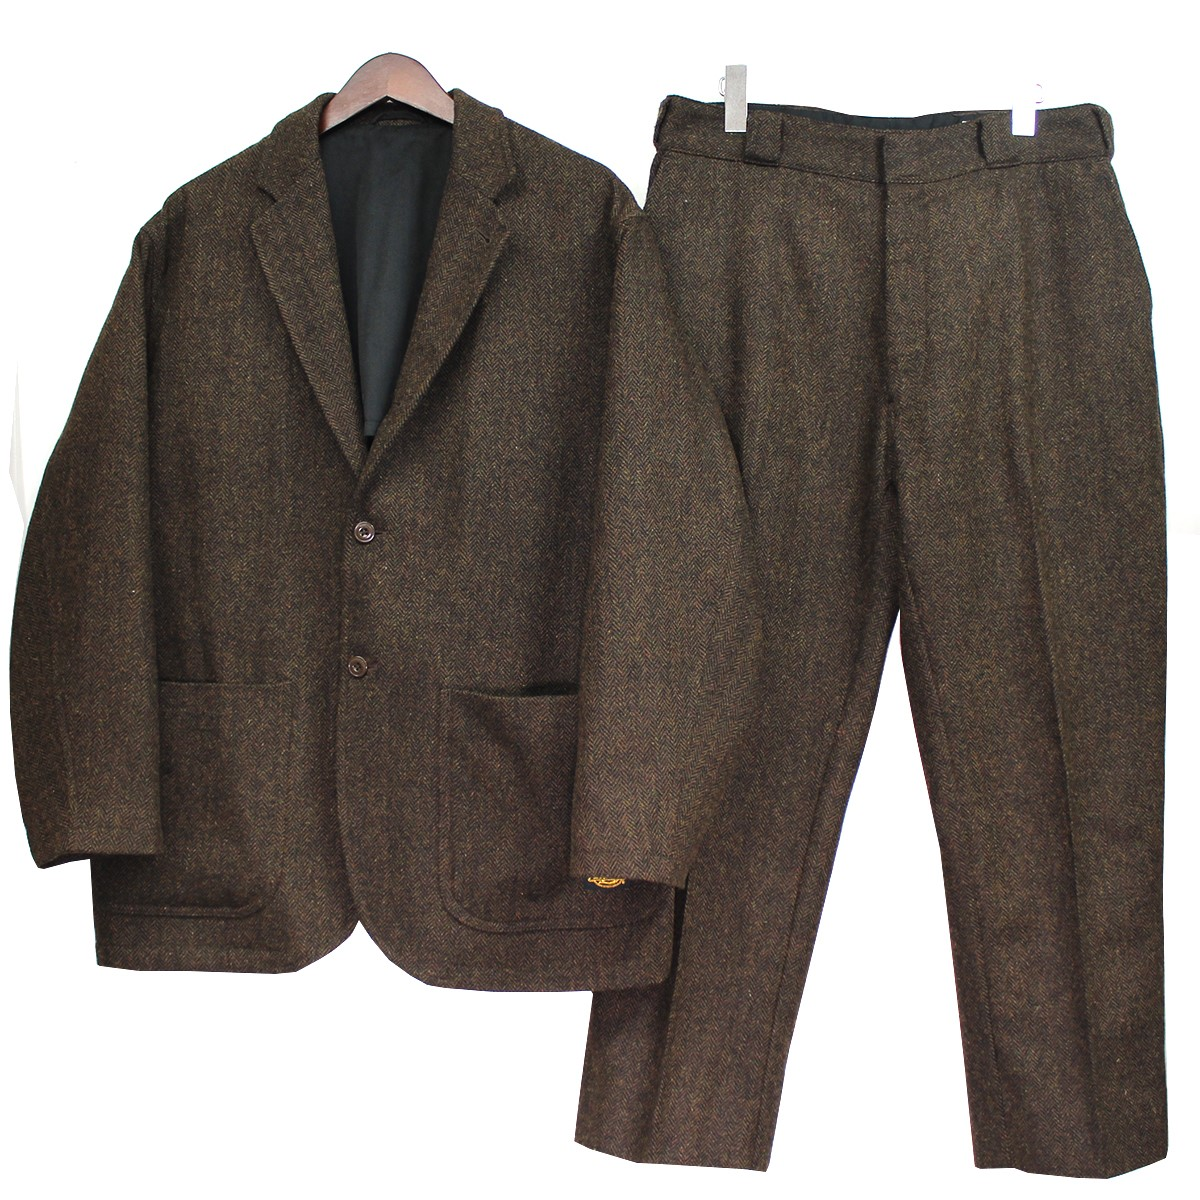 <title>トリップスター ディッキーズ ビームス 誕生日プレゼント 中古 TRIPSTER×Dickies×BEAMS 19AW ツイードセットアップ スーツ ブラウン サイズ:S L 291220</title>